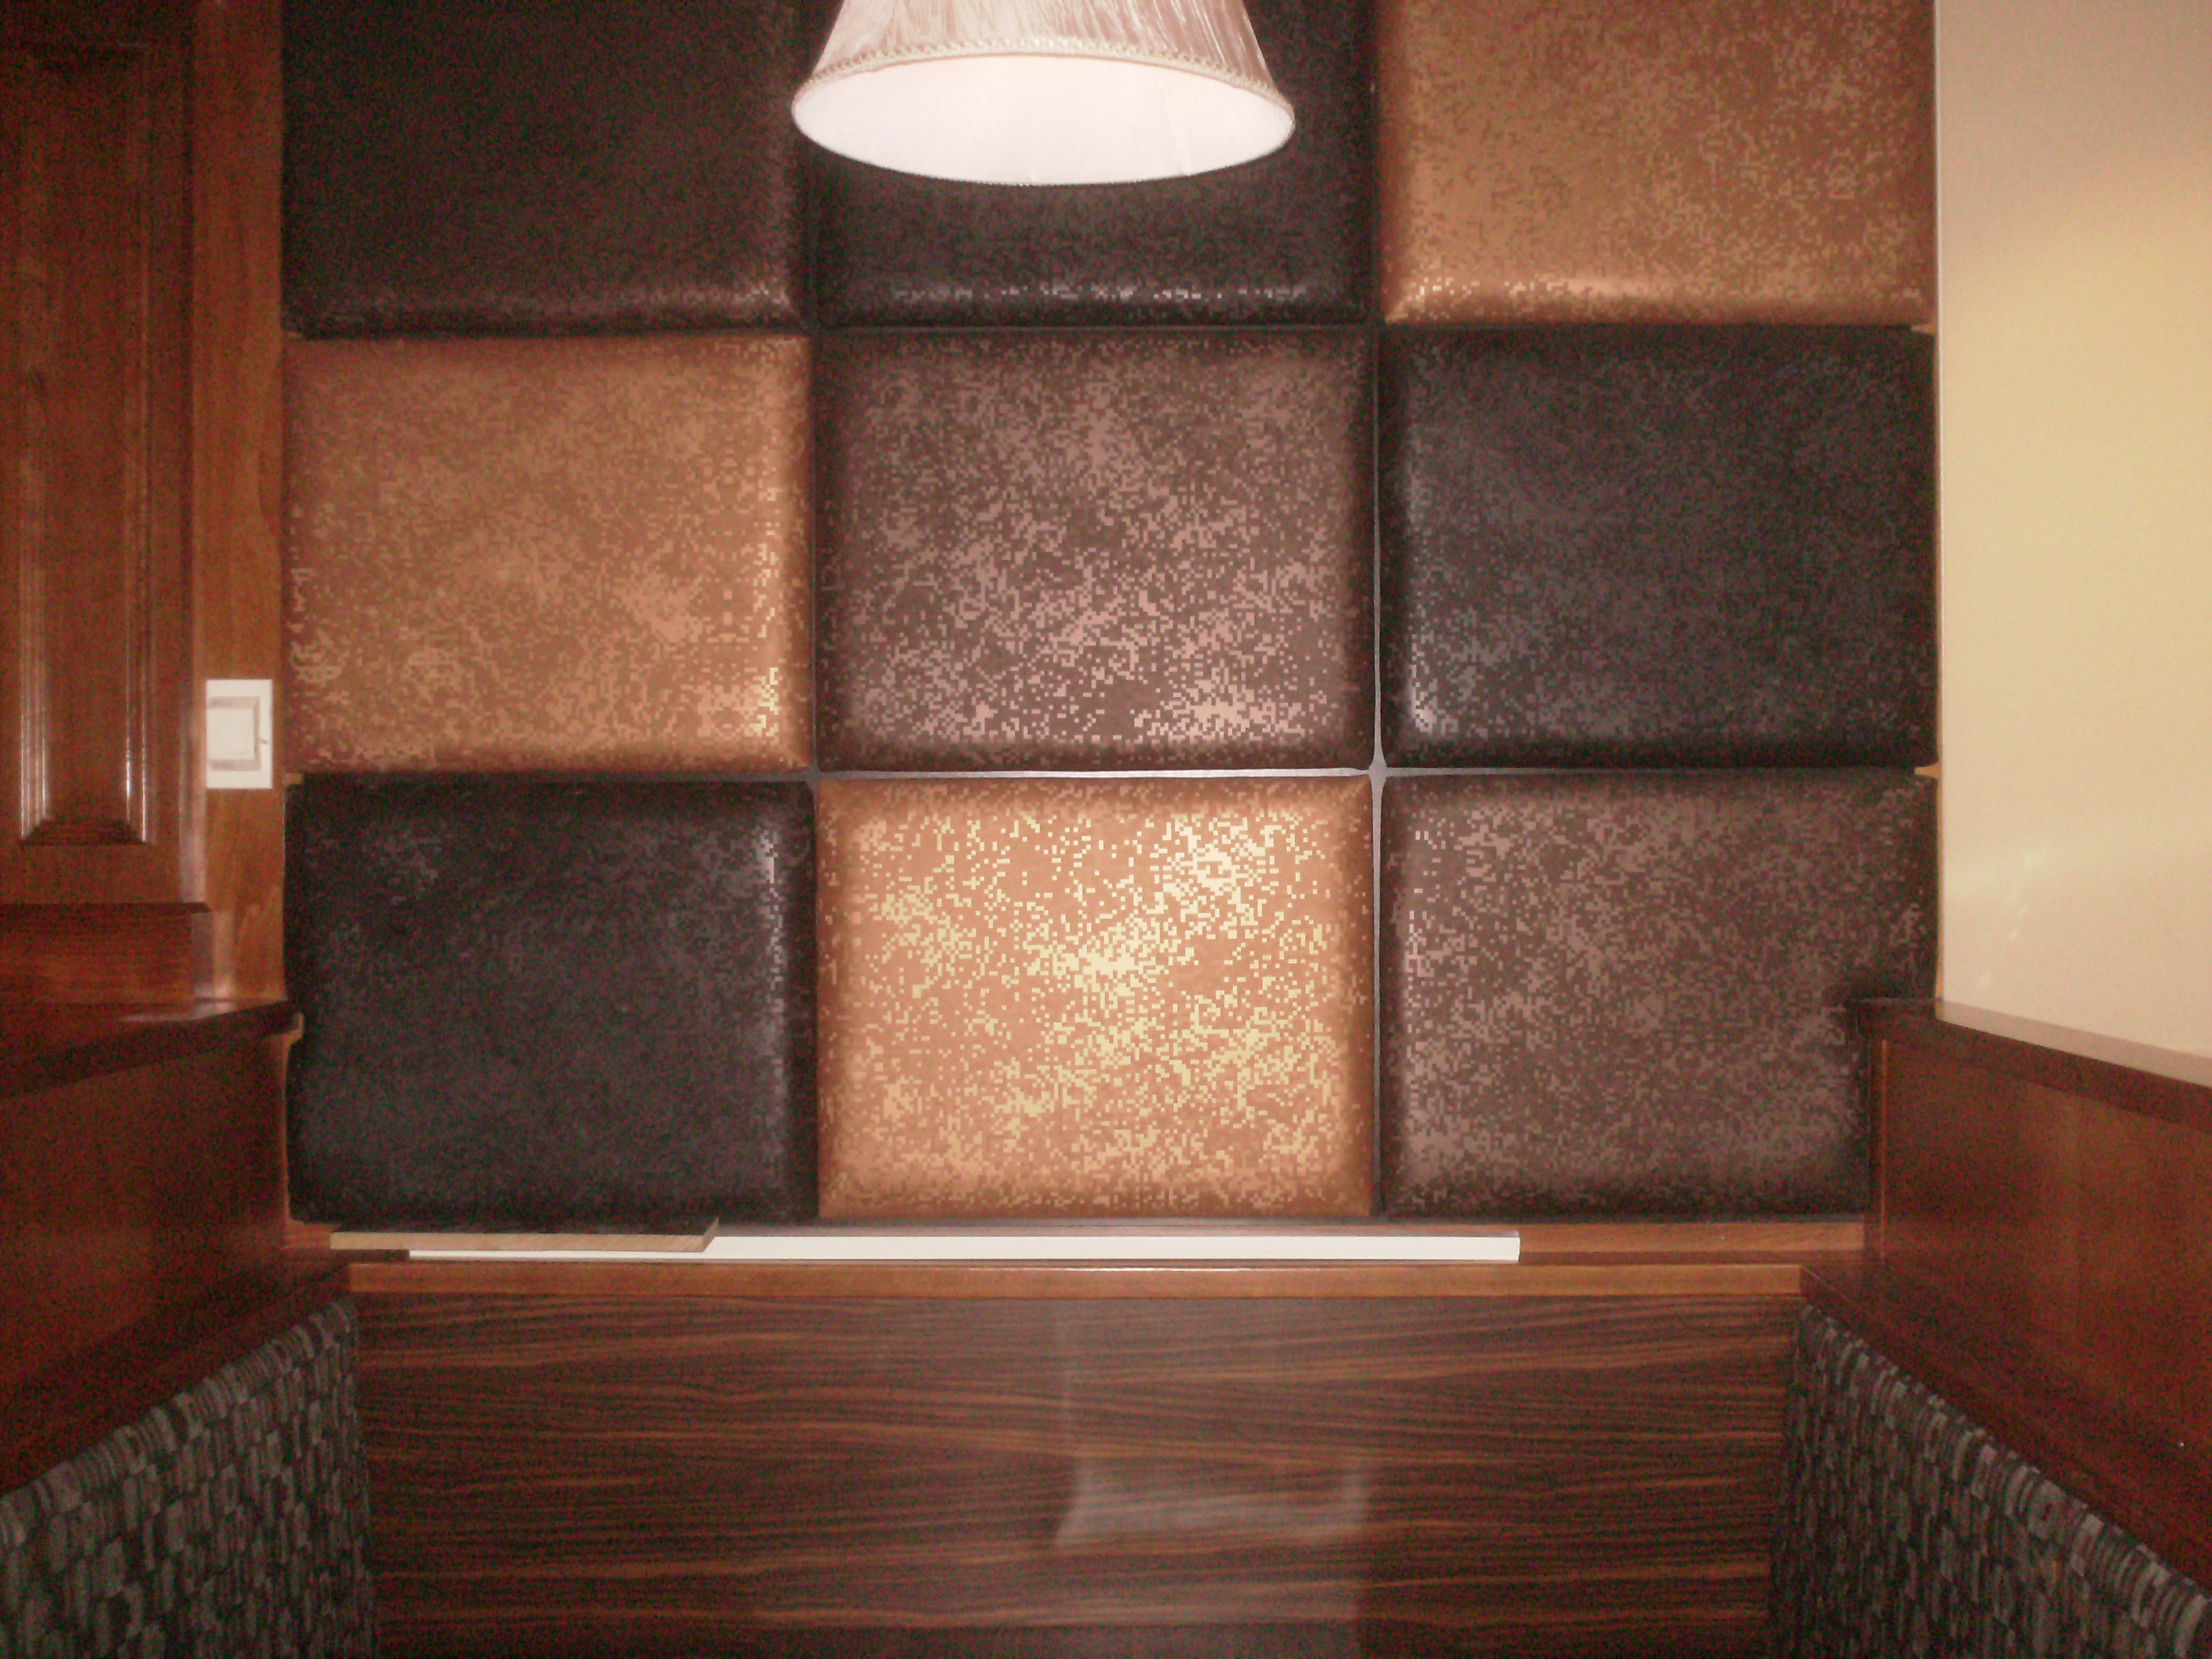 Upholstery Wall Panels : Upholstered wall panels springbok commercial upholstery